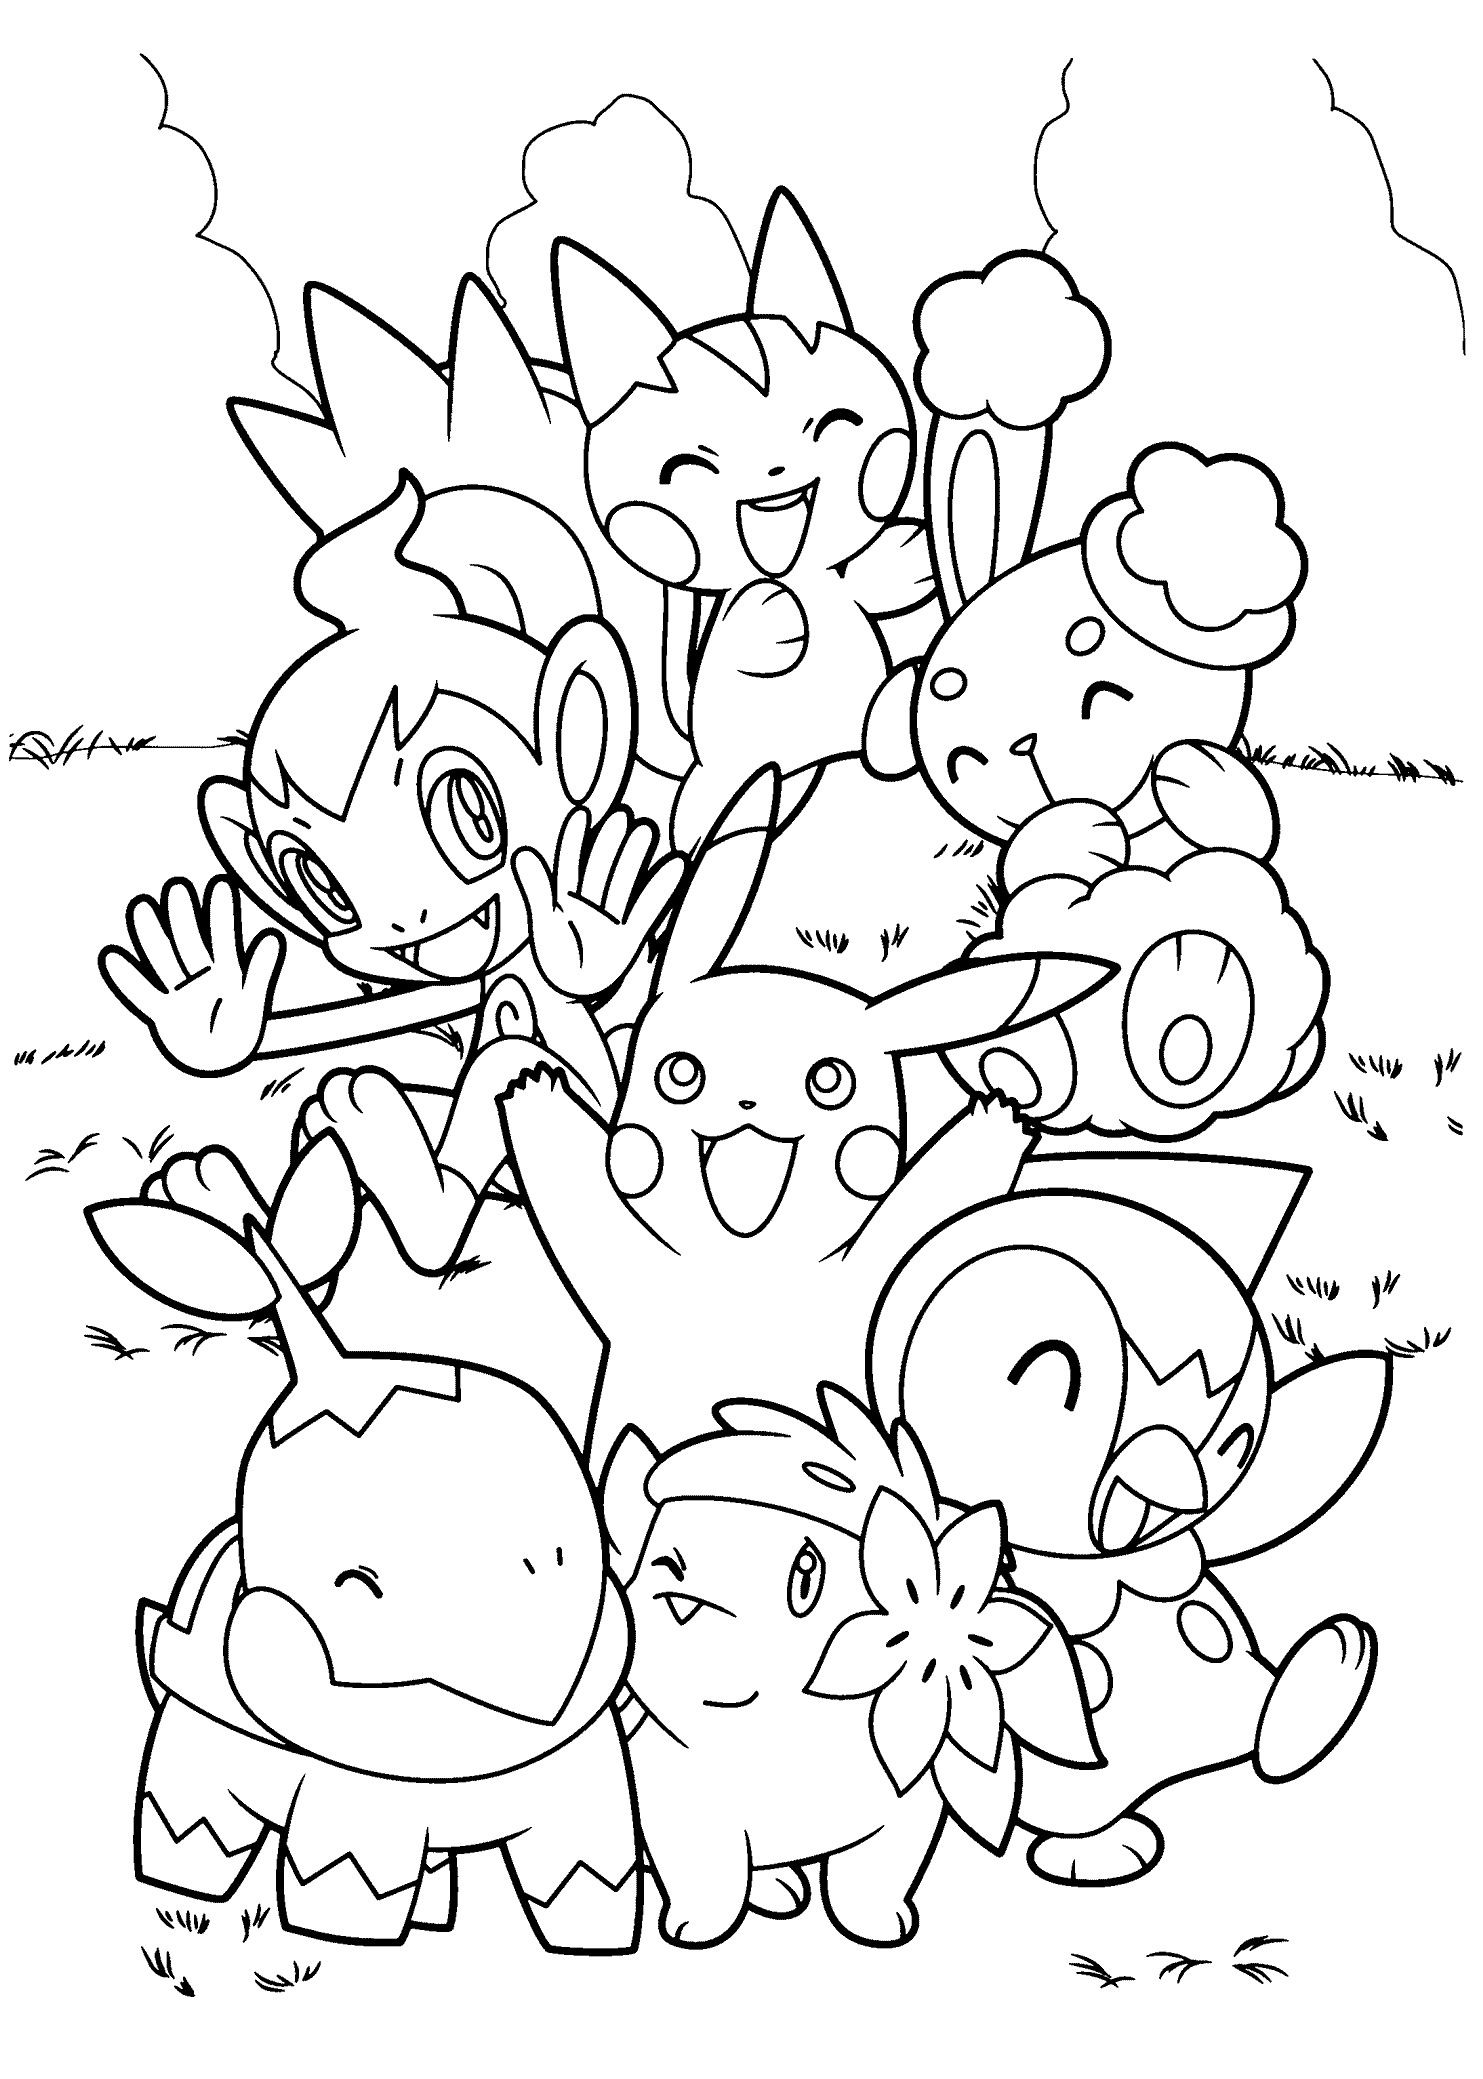 Pokemon Coloring Pages Birthday Through The Thousands Of Photographs On Line In Relation To P Pokemon Coloring Sheets Pokemon Coloring Pages Pokemon Coloring